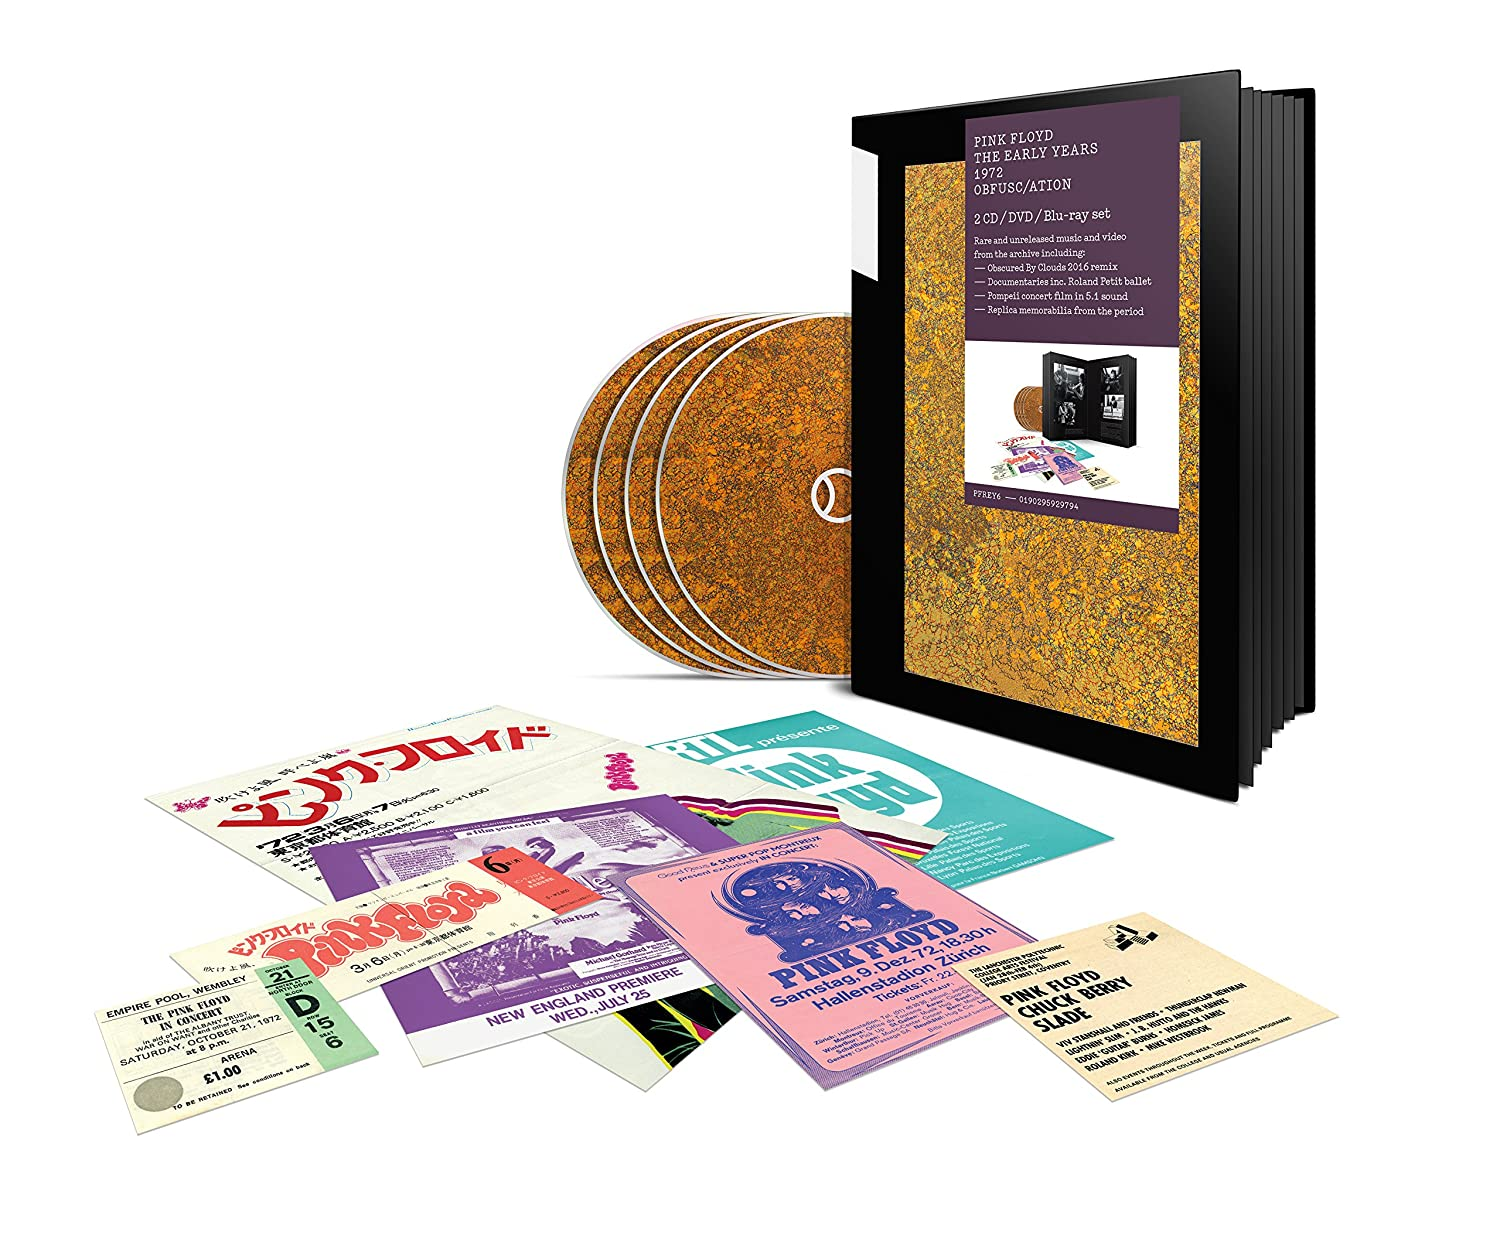 David Gilmour - Live at Pompeii 9 New New product!! products world's highest quality popular Blu-ray 29 Video Disc